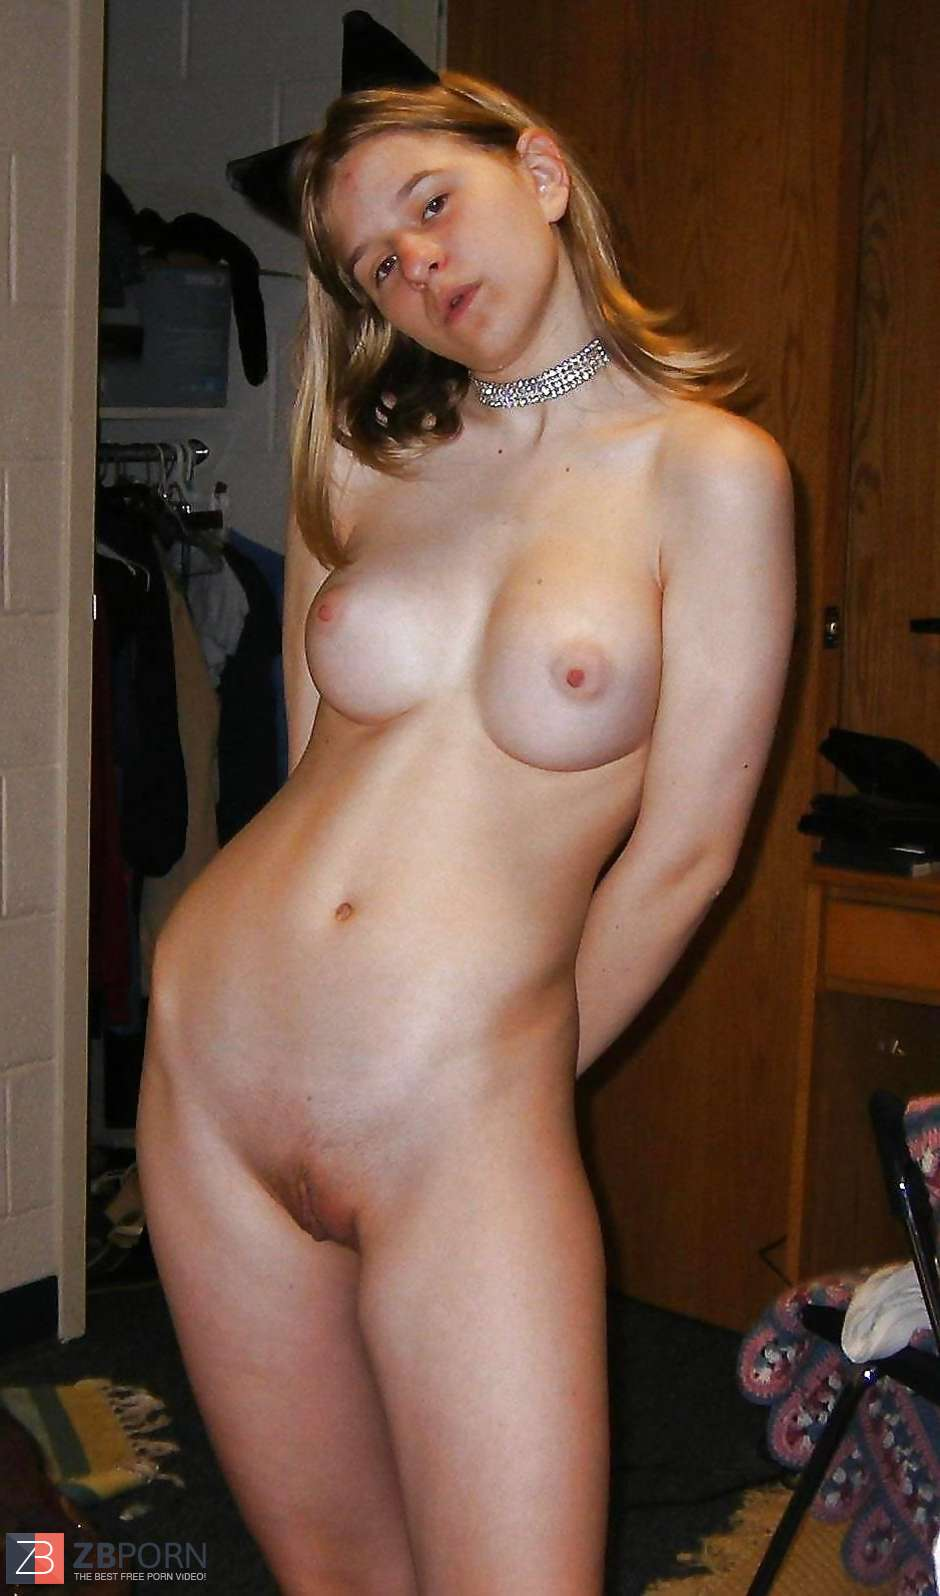 INEXPERIENCED NUDE GALS STANDING ZB Porn